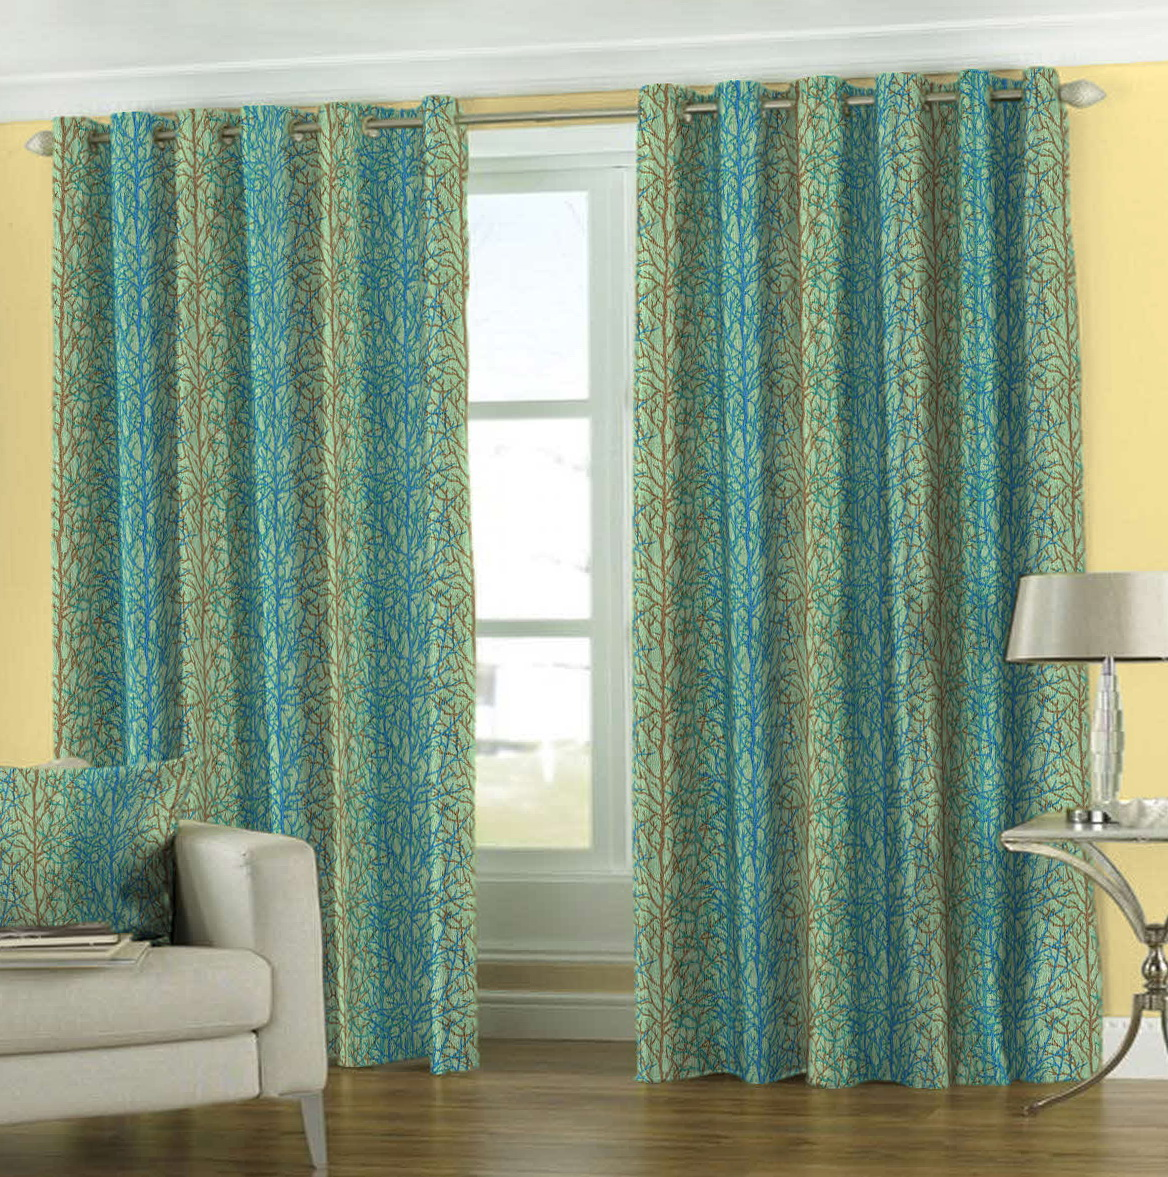 blue and green window curtains home design ideas. Black Bedroom Furniture Sets. Home Design Ideas